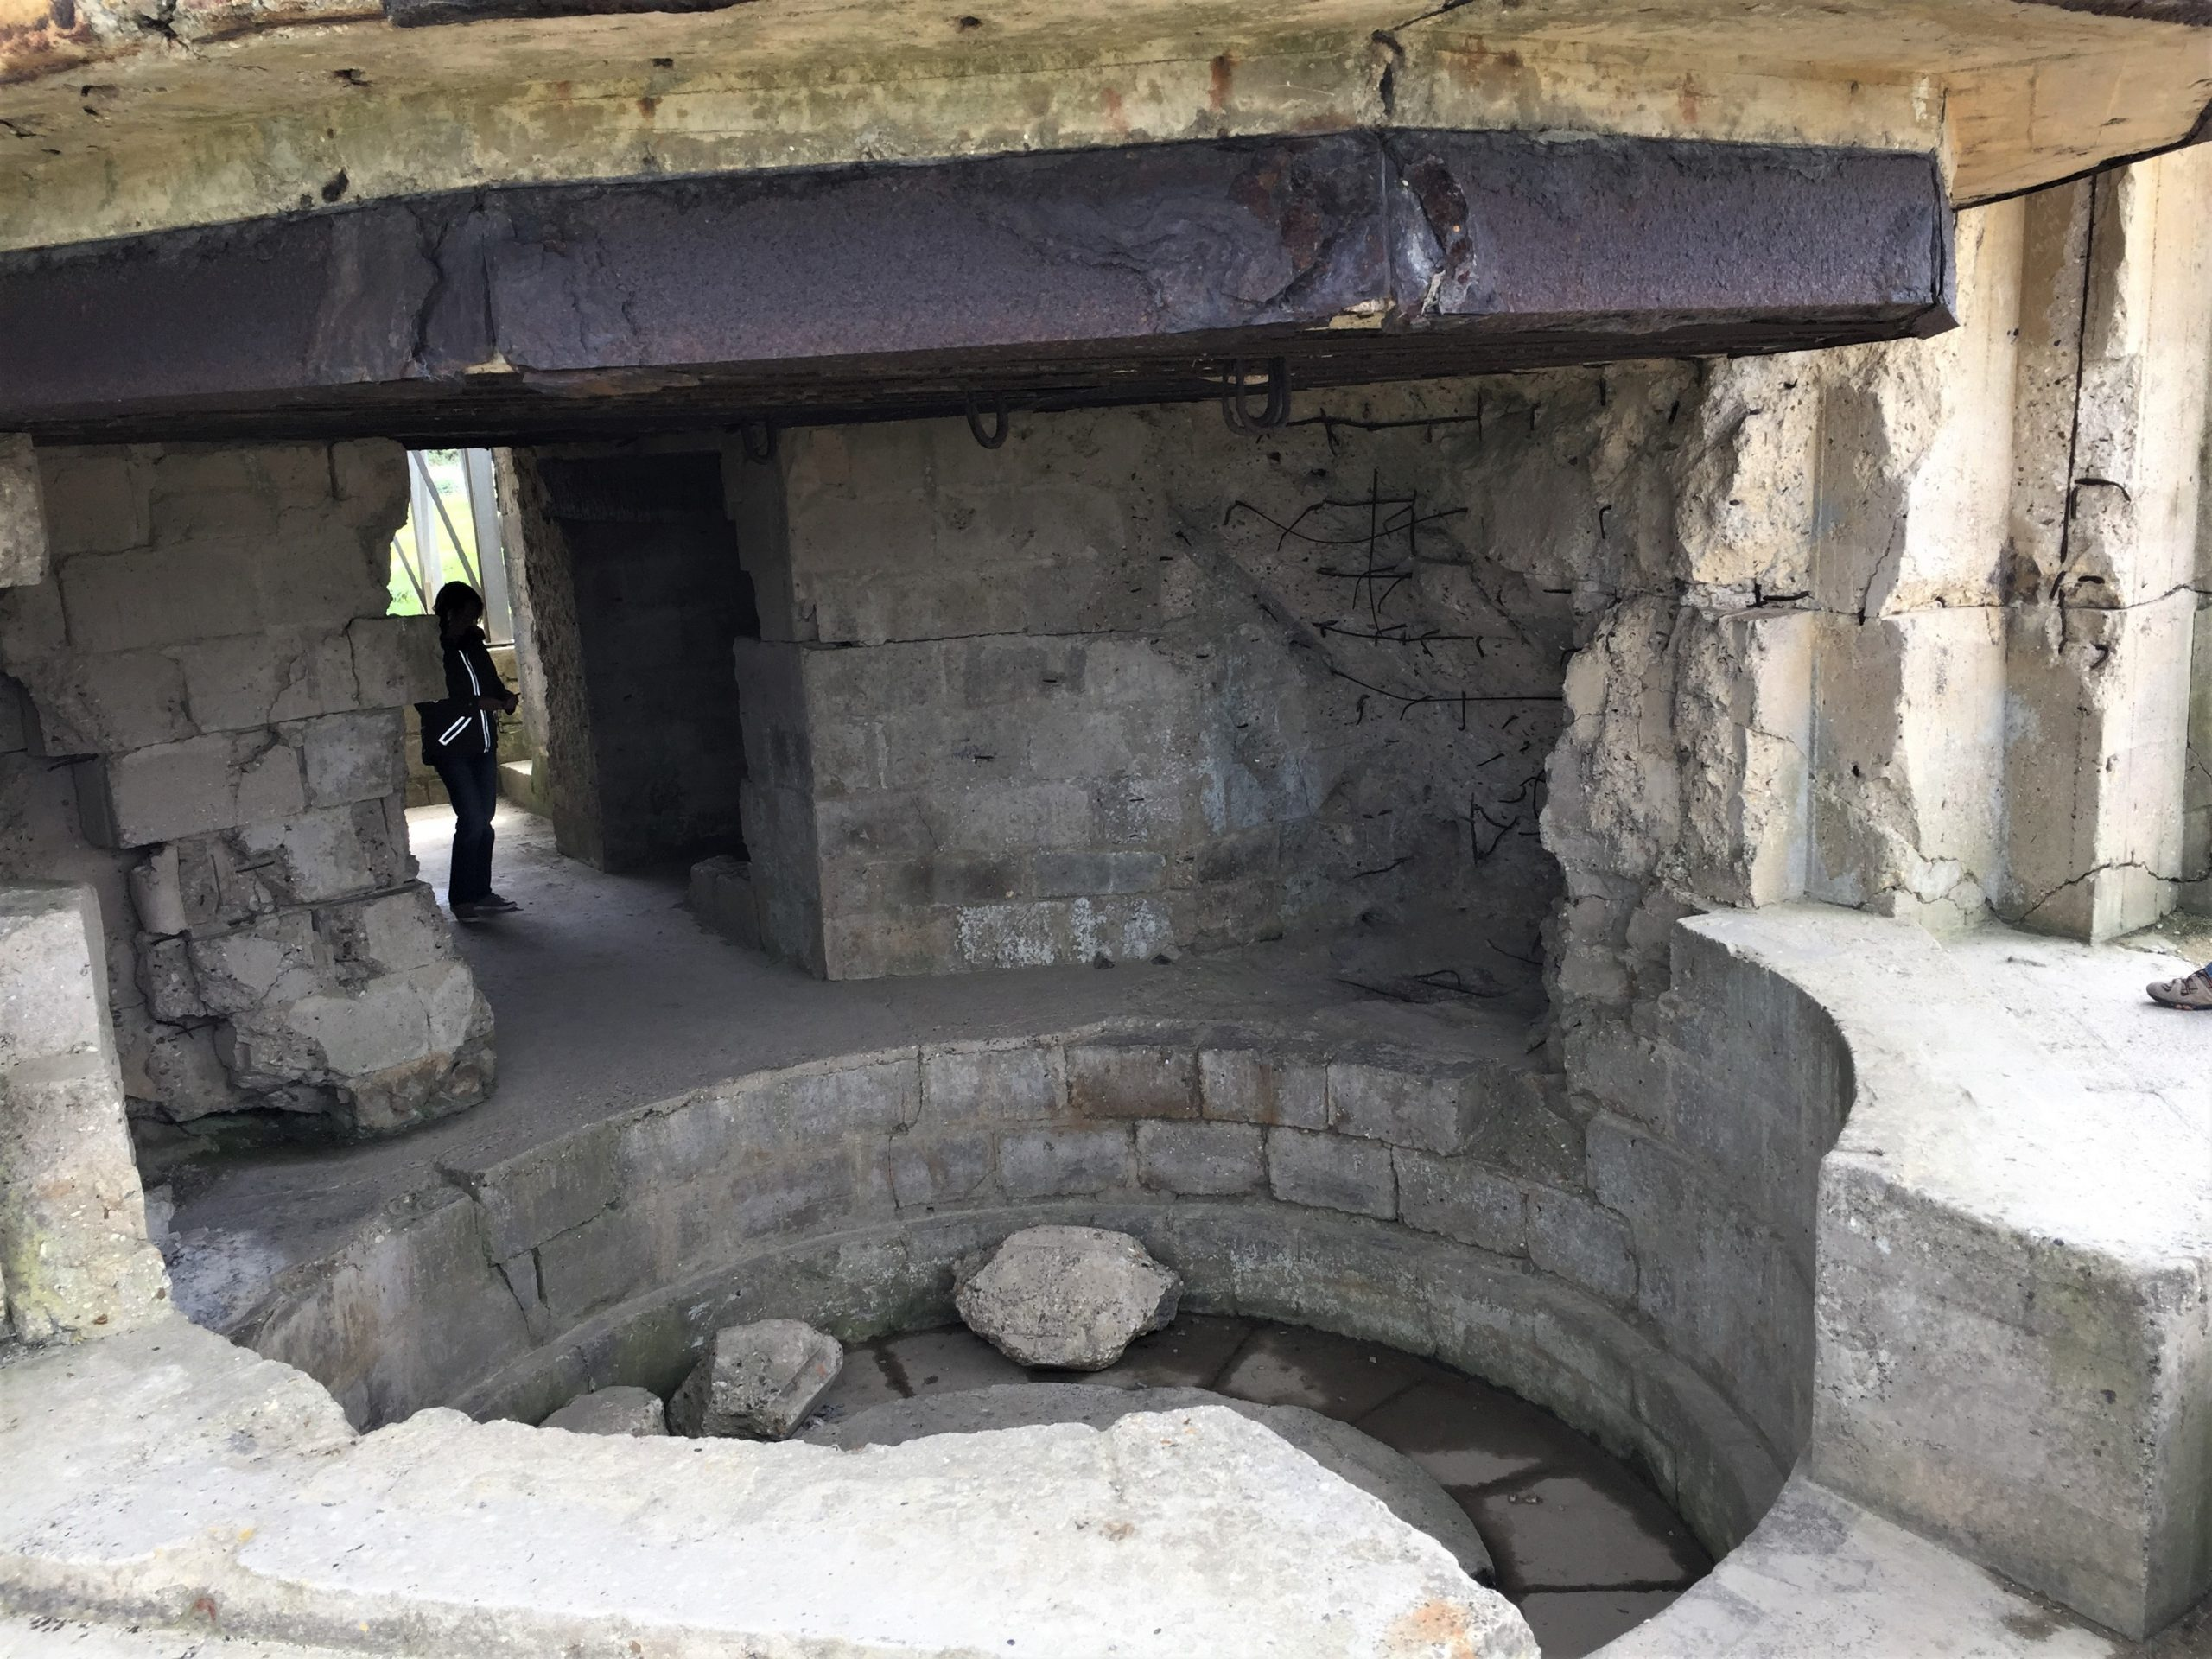 Inside a gun casemate at Pointe du Hoc (Photo: Sarah Sundin, September 2017)